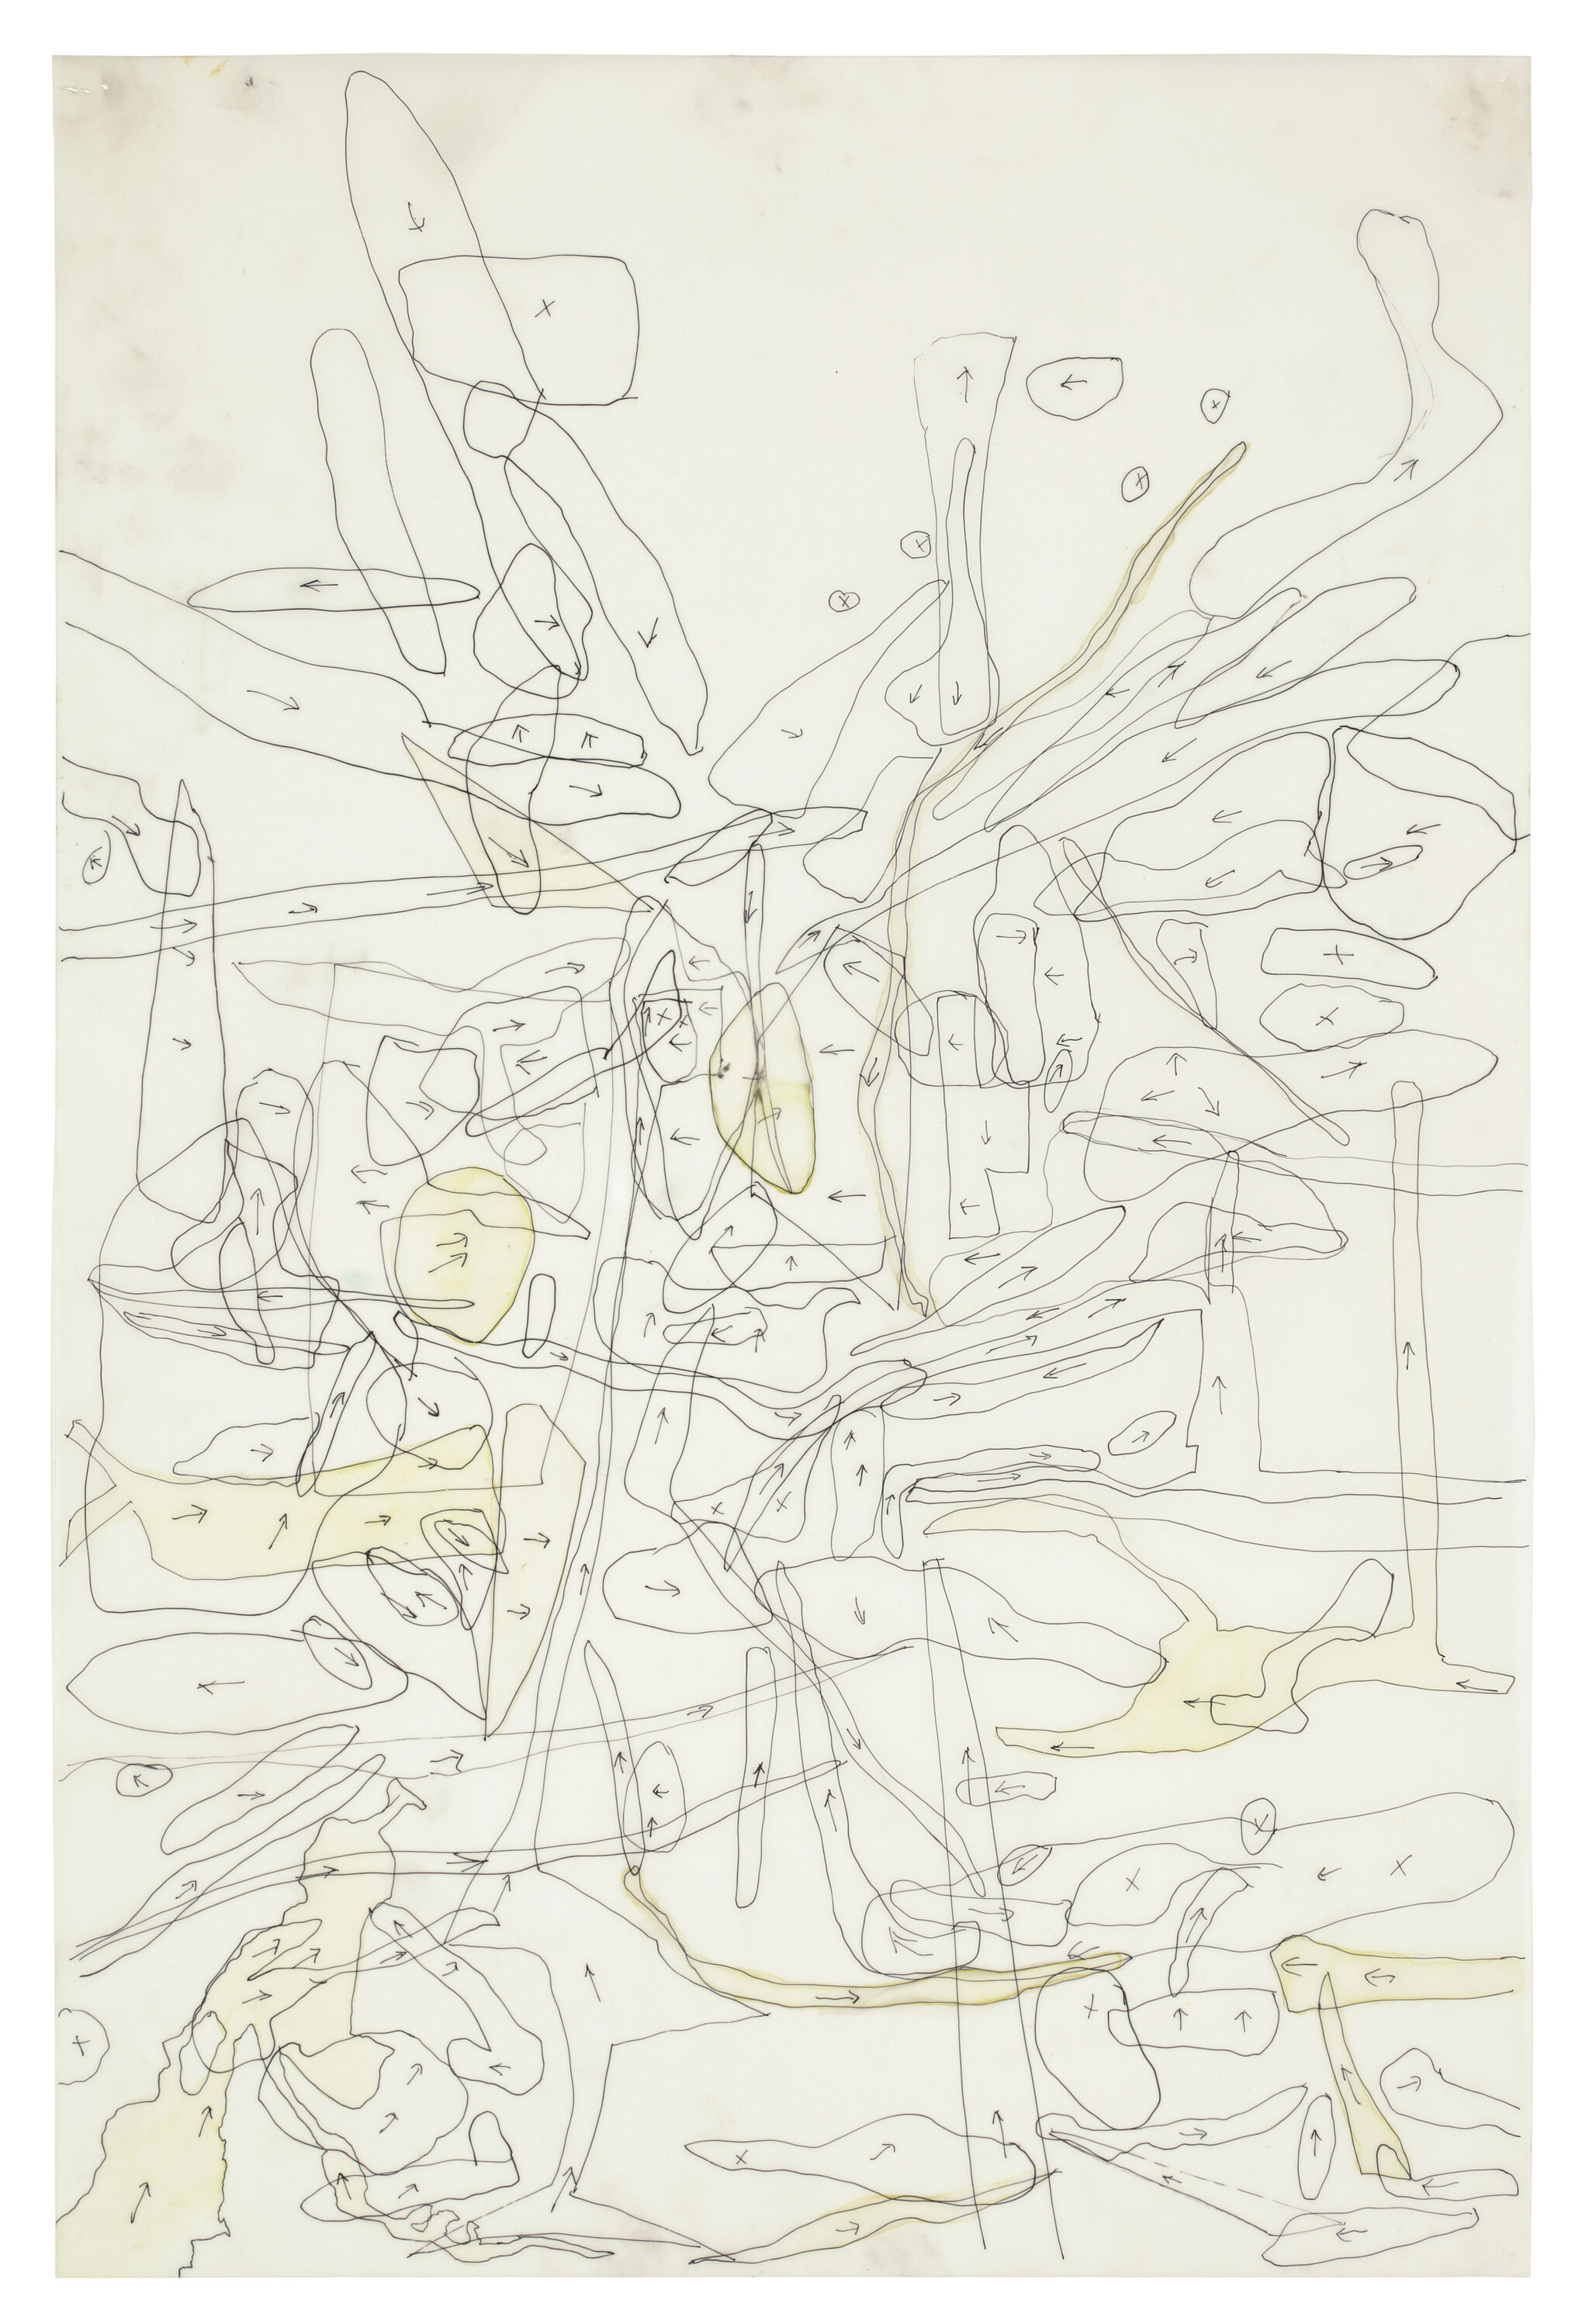 A series of abstract line drawings overlap across a beige background.